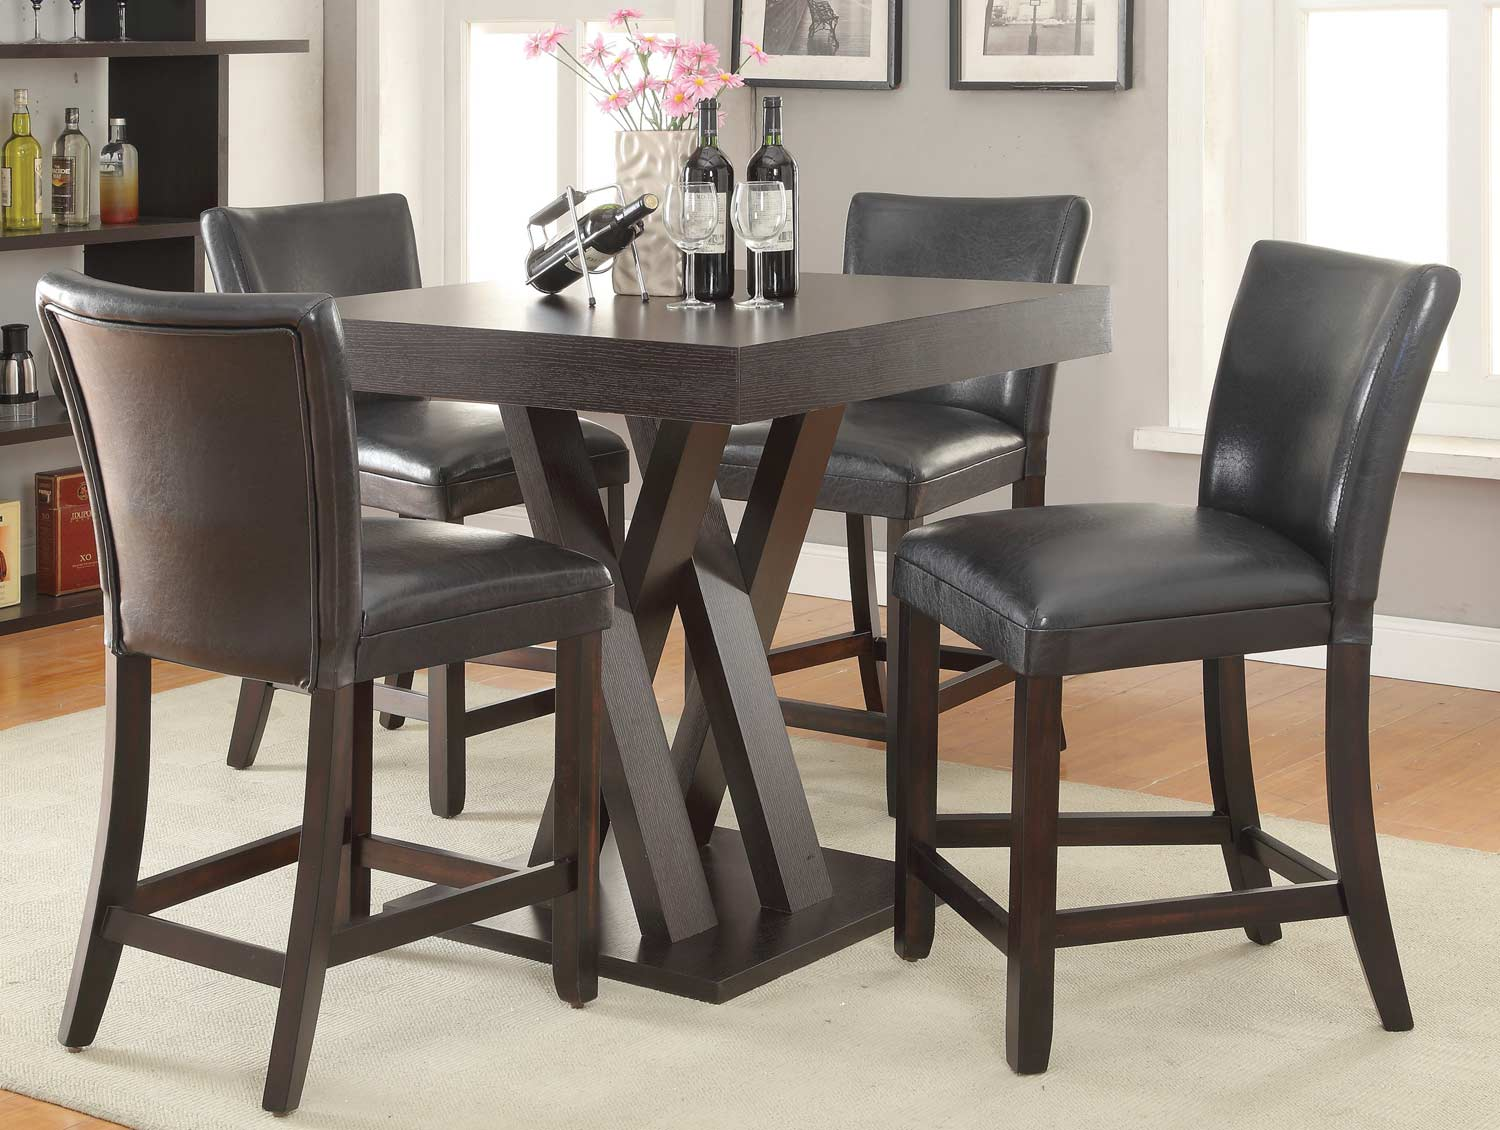 Coaster 100523 Counter Height Dining Set  Cappuccino